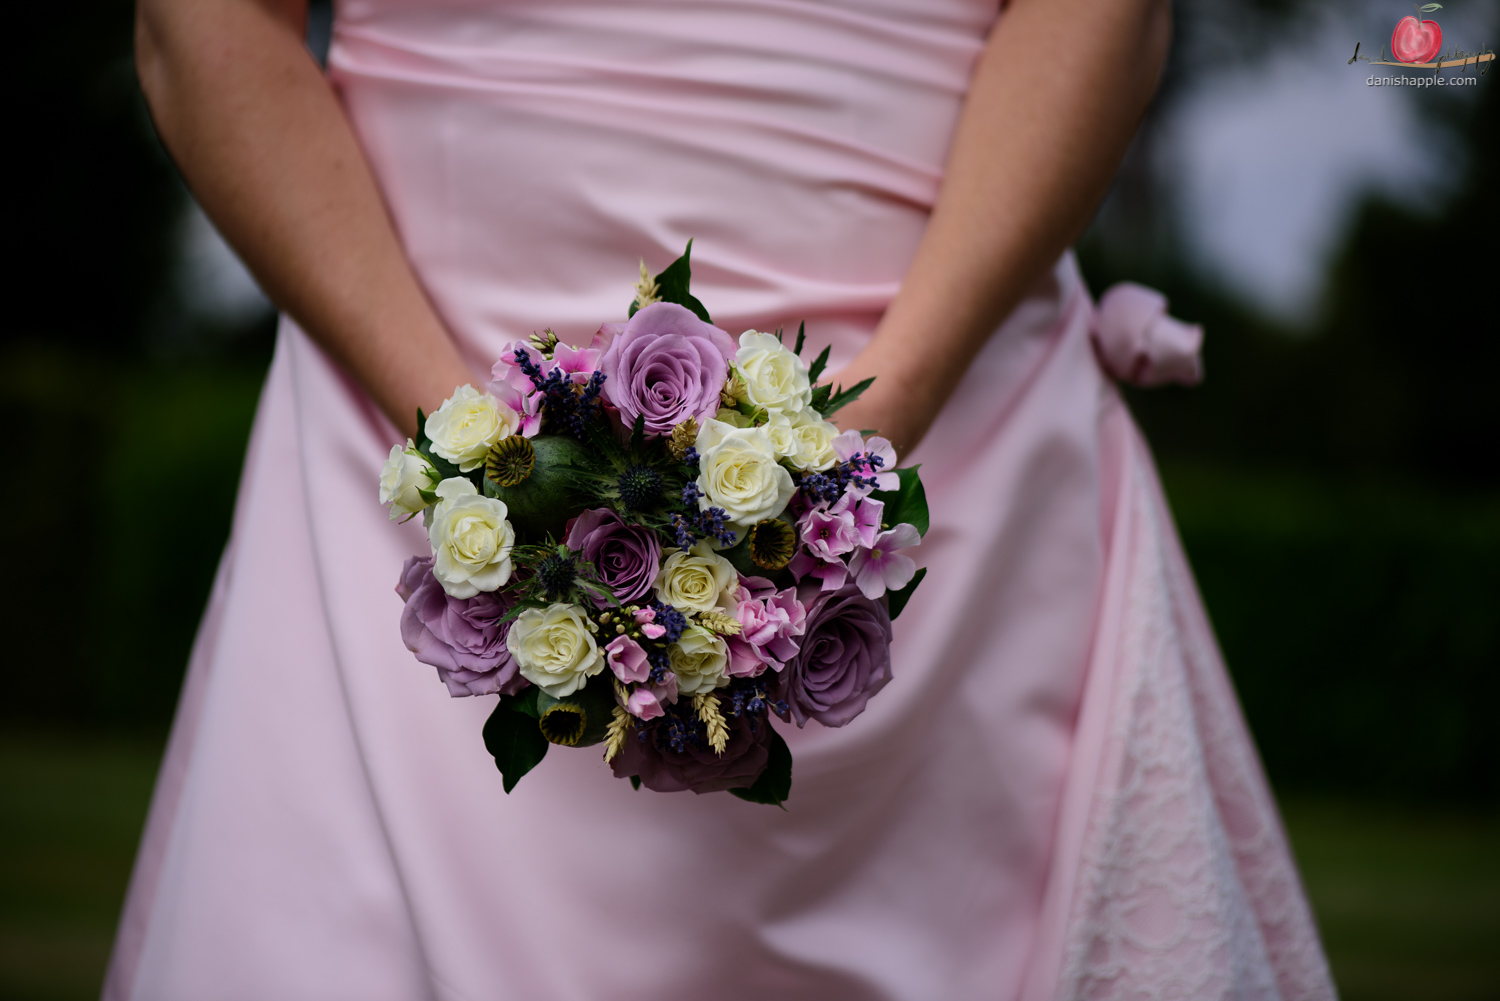 Bridal bouquet shot with Nikon D810